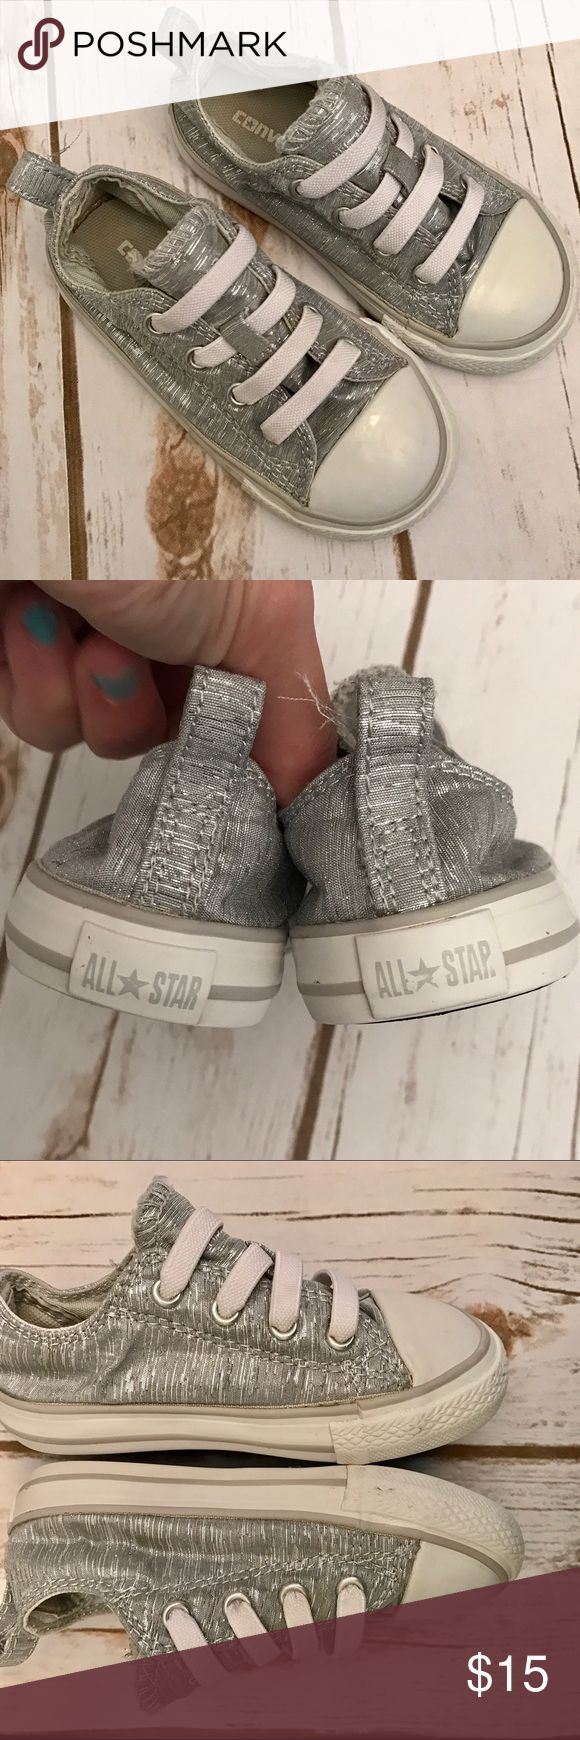 Converse All Stars toddler size 7 In pretty good shape. No laces to tie. Silvery color. Converse Shoes Flats & Loafers